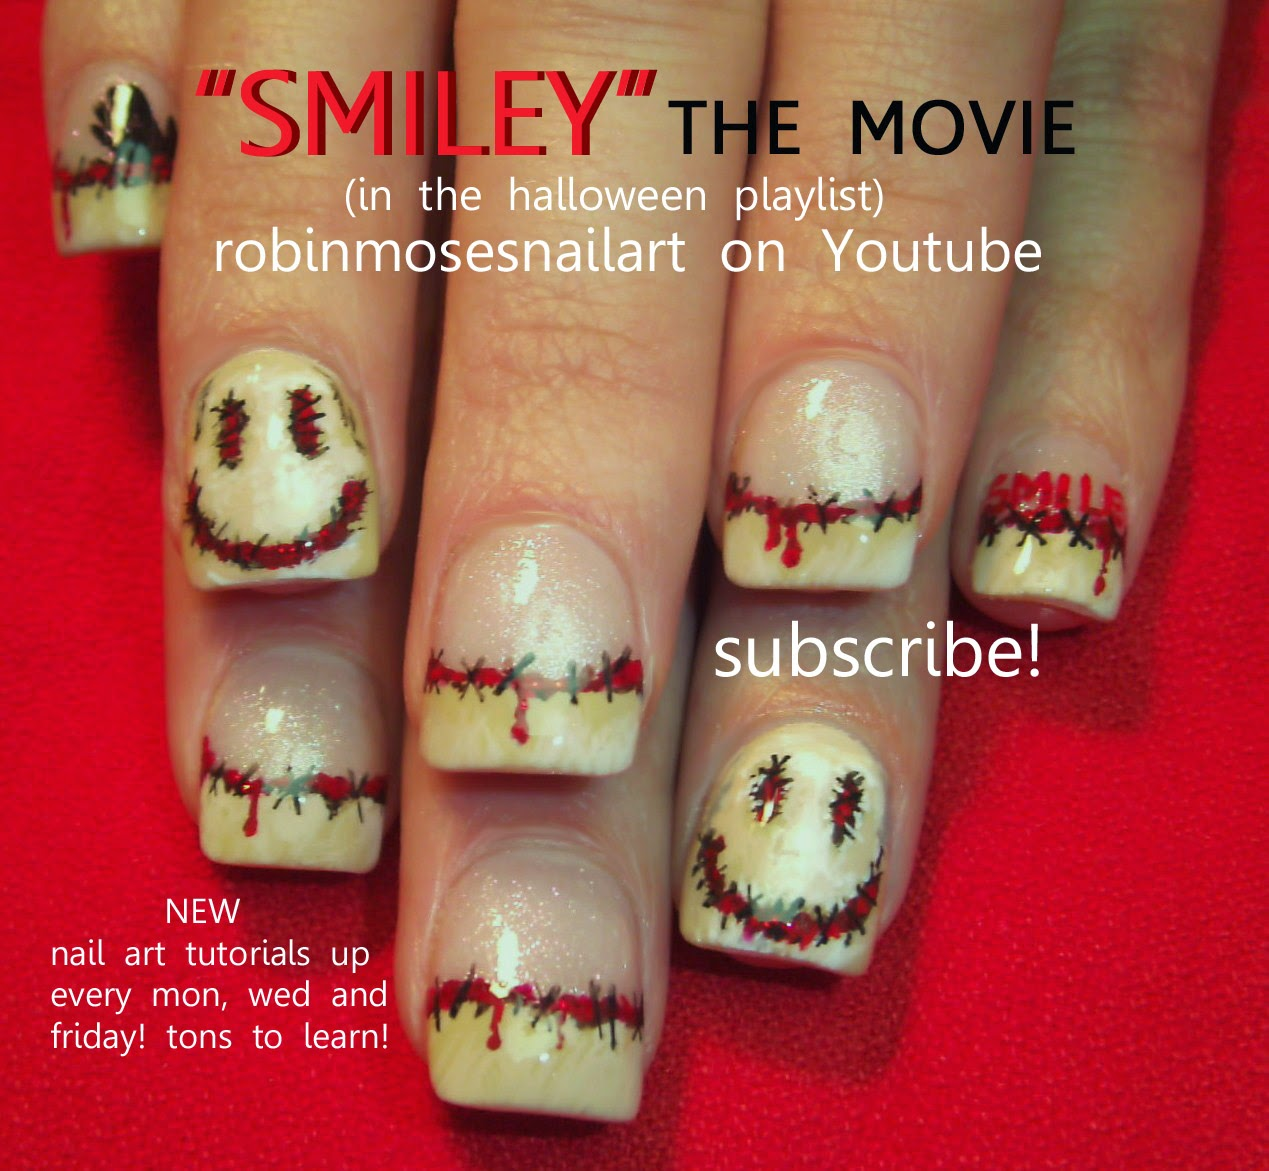 Robin moses nail art halloween nails halloween nail art nail art tutorials diy halloween nail designs dark horror film and scary nail art for beginners and up prinsesfo Images